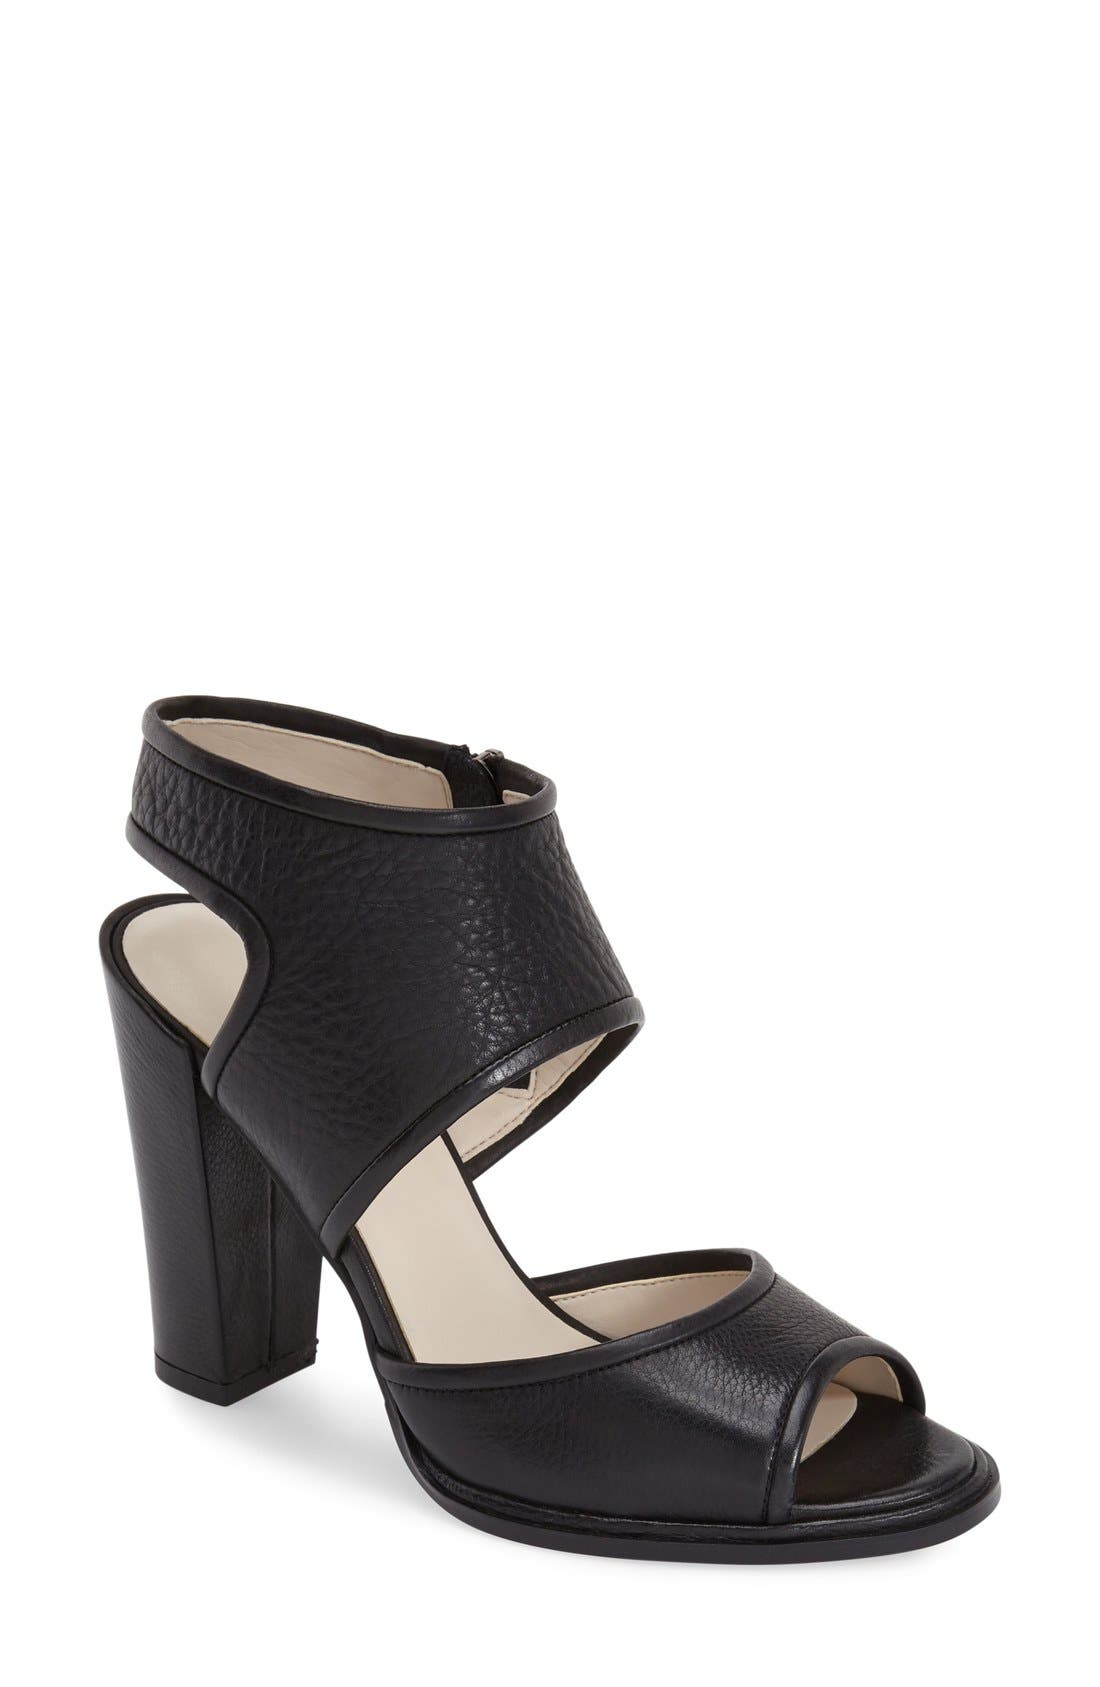 Main Image - Kenneth Cole New York 'Stacy' Sandal (Women)